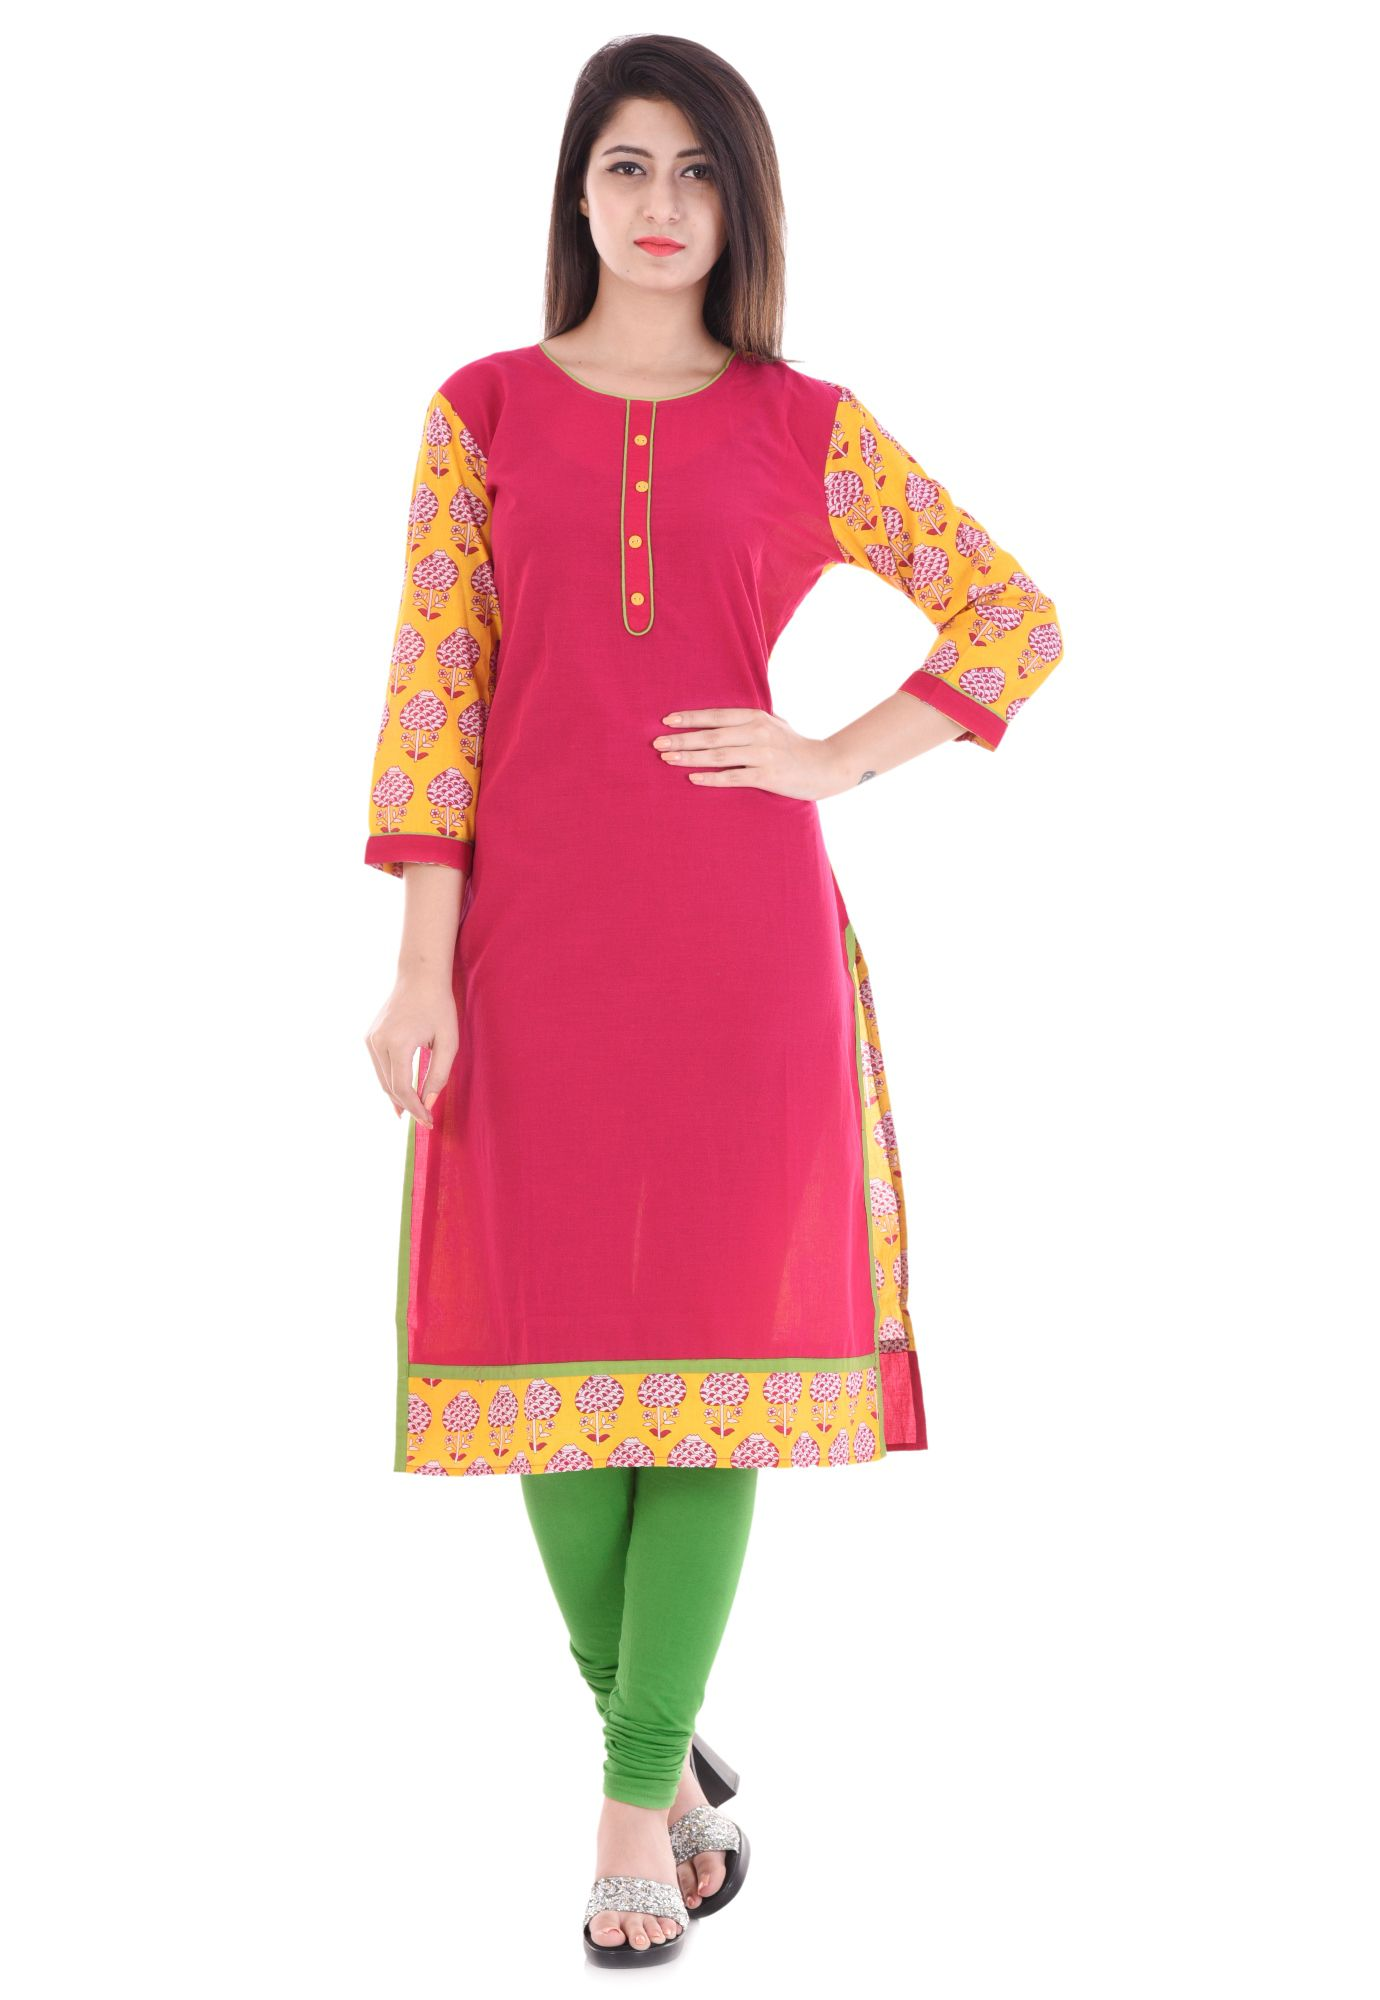 PARTH LATEST FASHION Multicoloured Cotton A-line Kurti